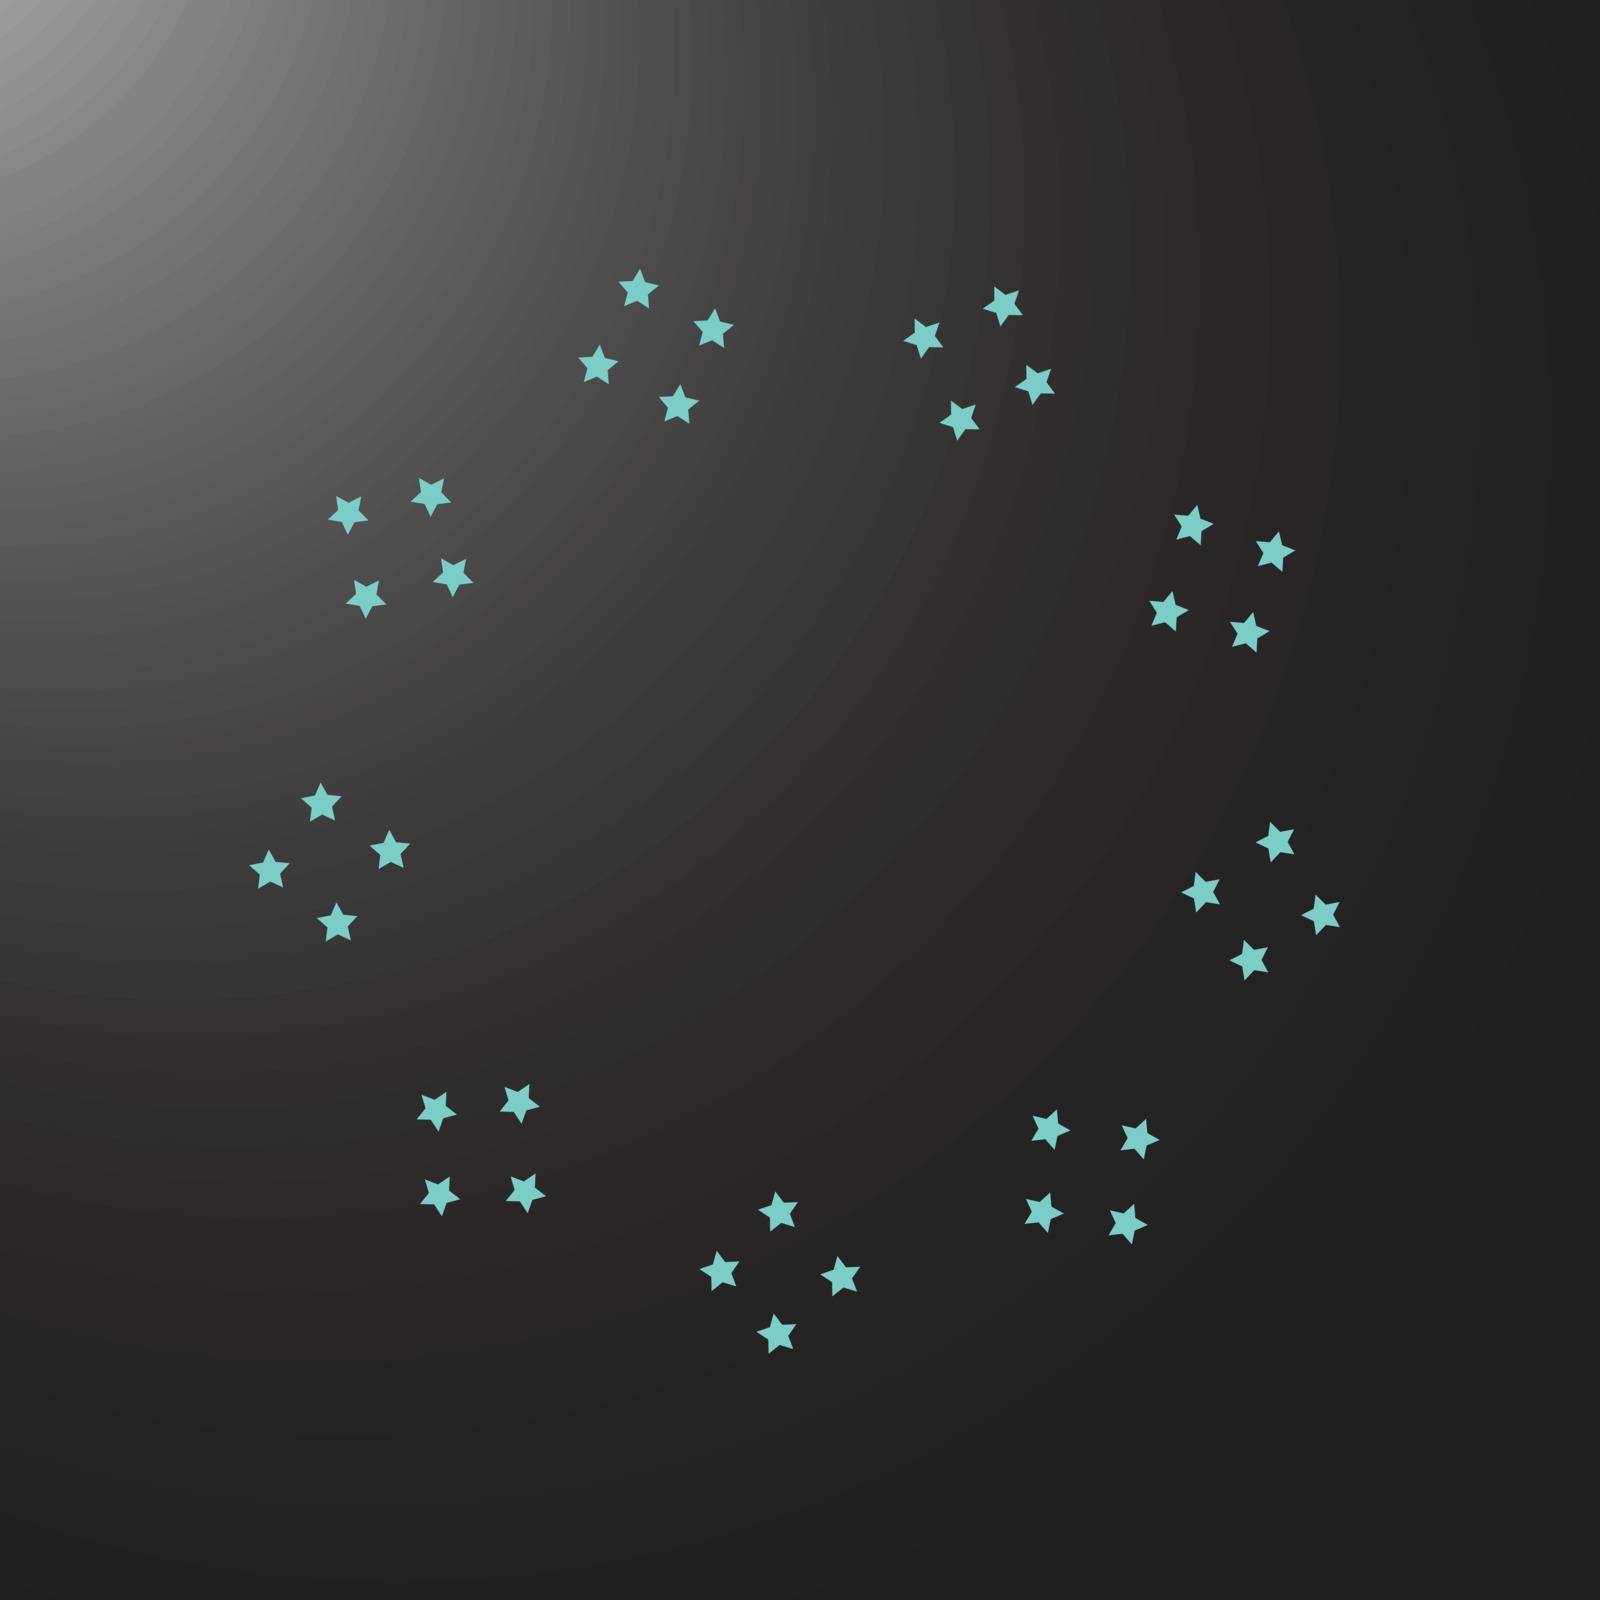 illustration which depicts blue stars on a black background